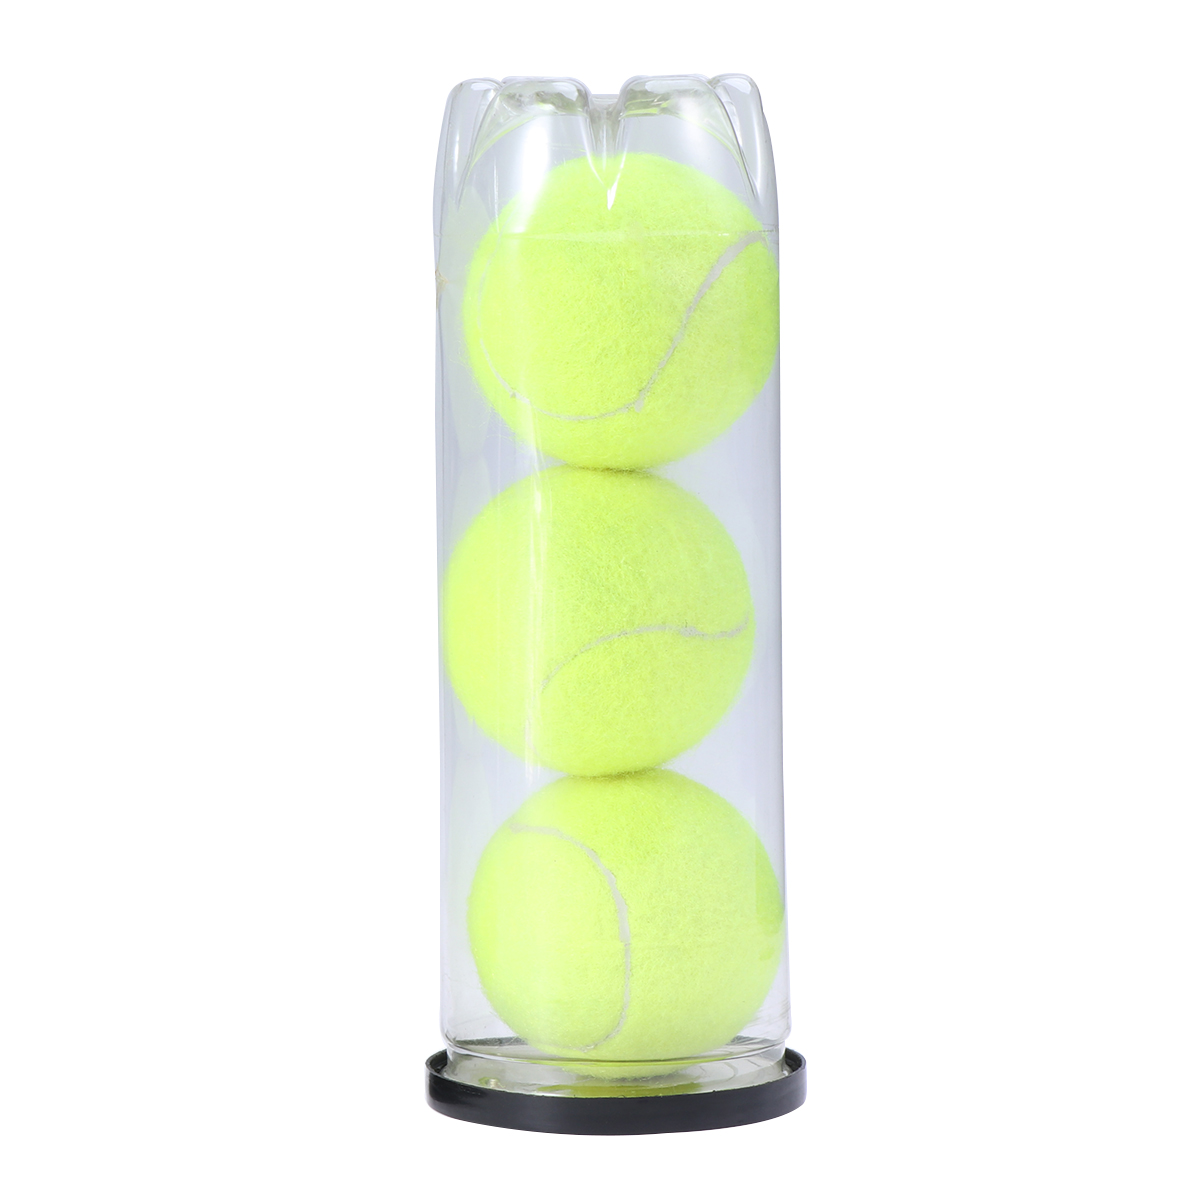 3pcs Tennis Balls With Tinplate Practice Easy Pull Cover Regular Duty Dogs Canned Pets Championship Tennis Balls Set